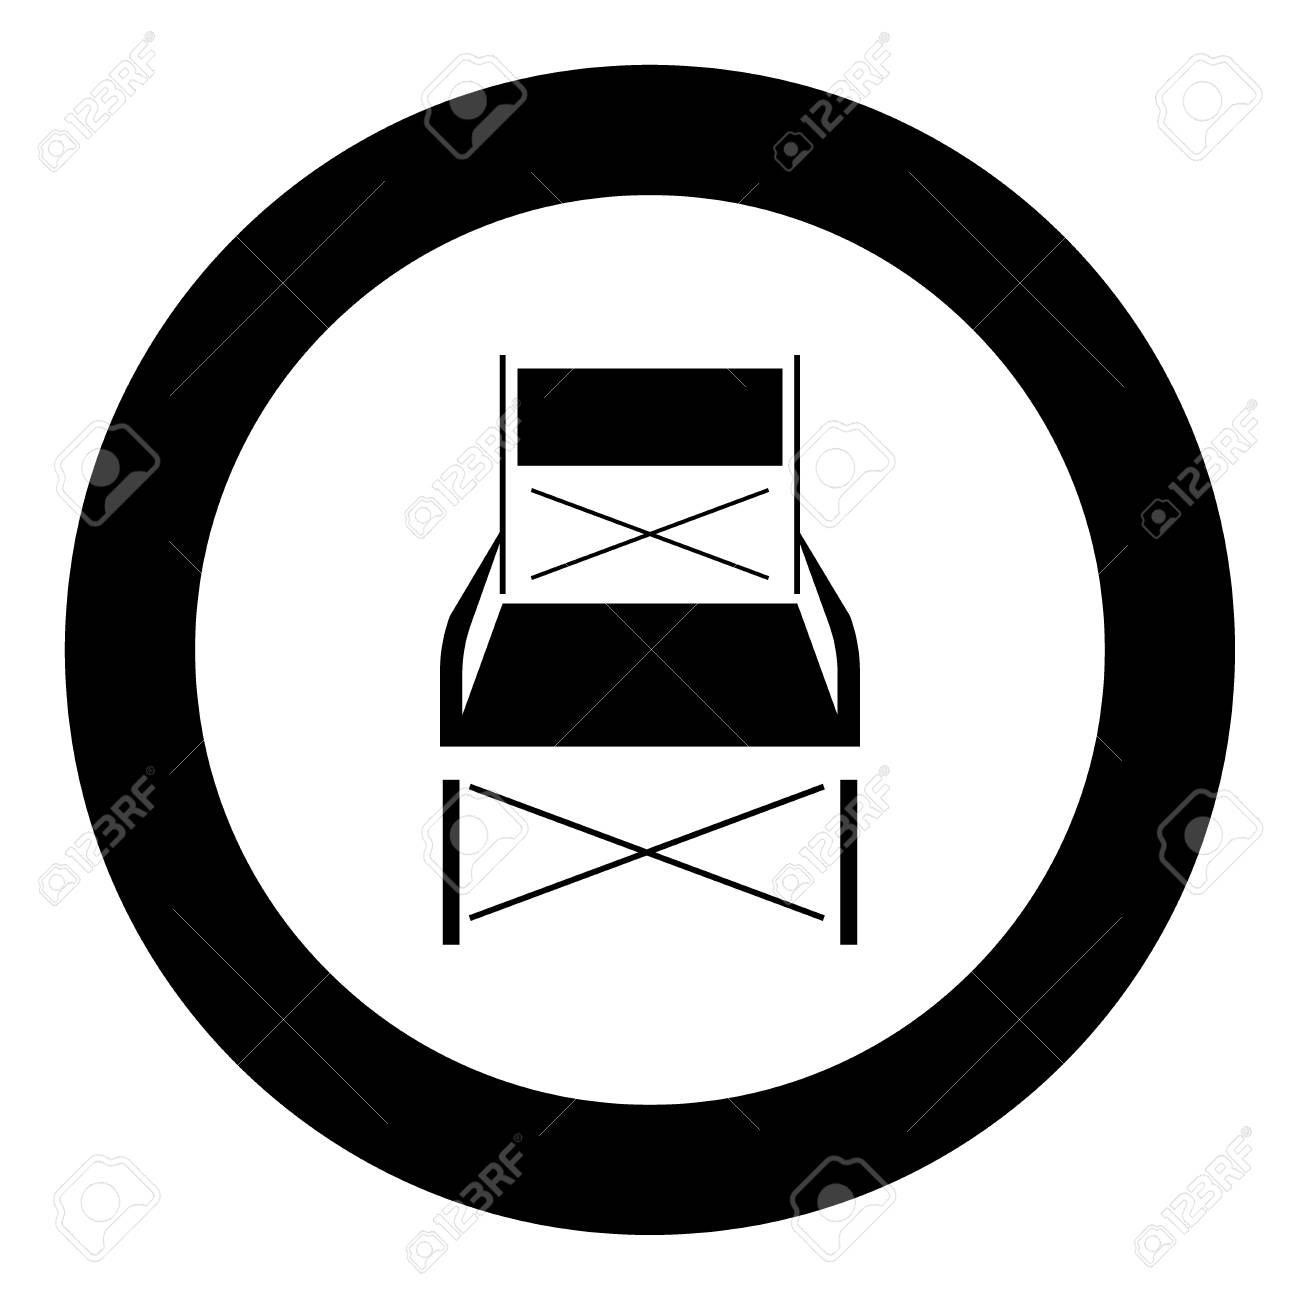 Super Folding Chair Black Icon In Circle Vector Illustration Isolated Caraccident5 Cool Chair Designs And Ideas Caraccident5Info